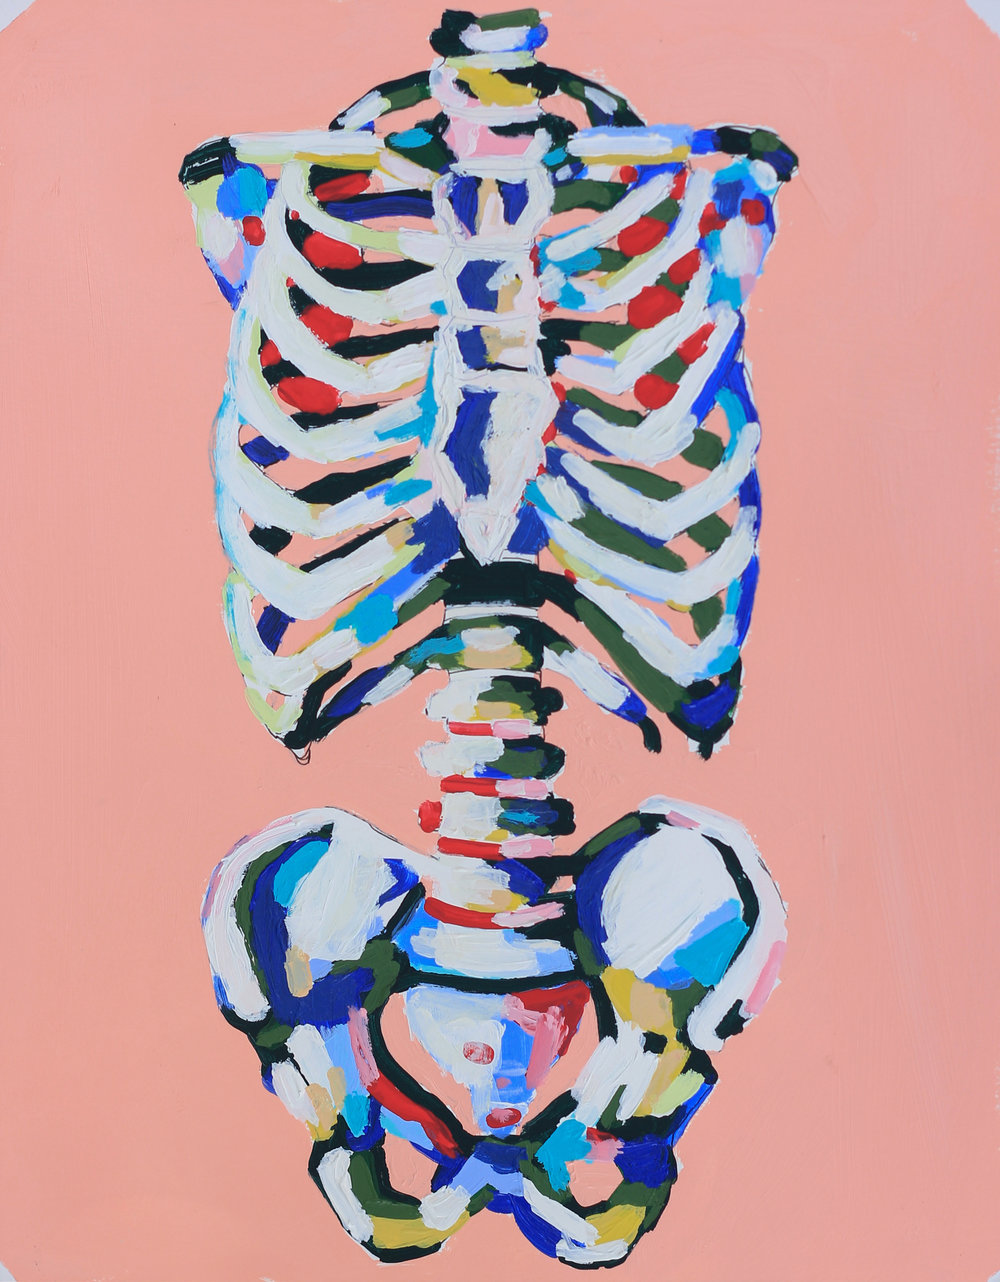 7Kate Waddell - _Colors in My Bones_ - 18x24 - Acrylic - 2017- $350.jpg